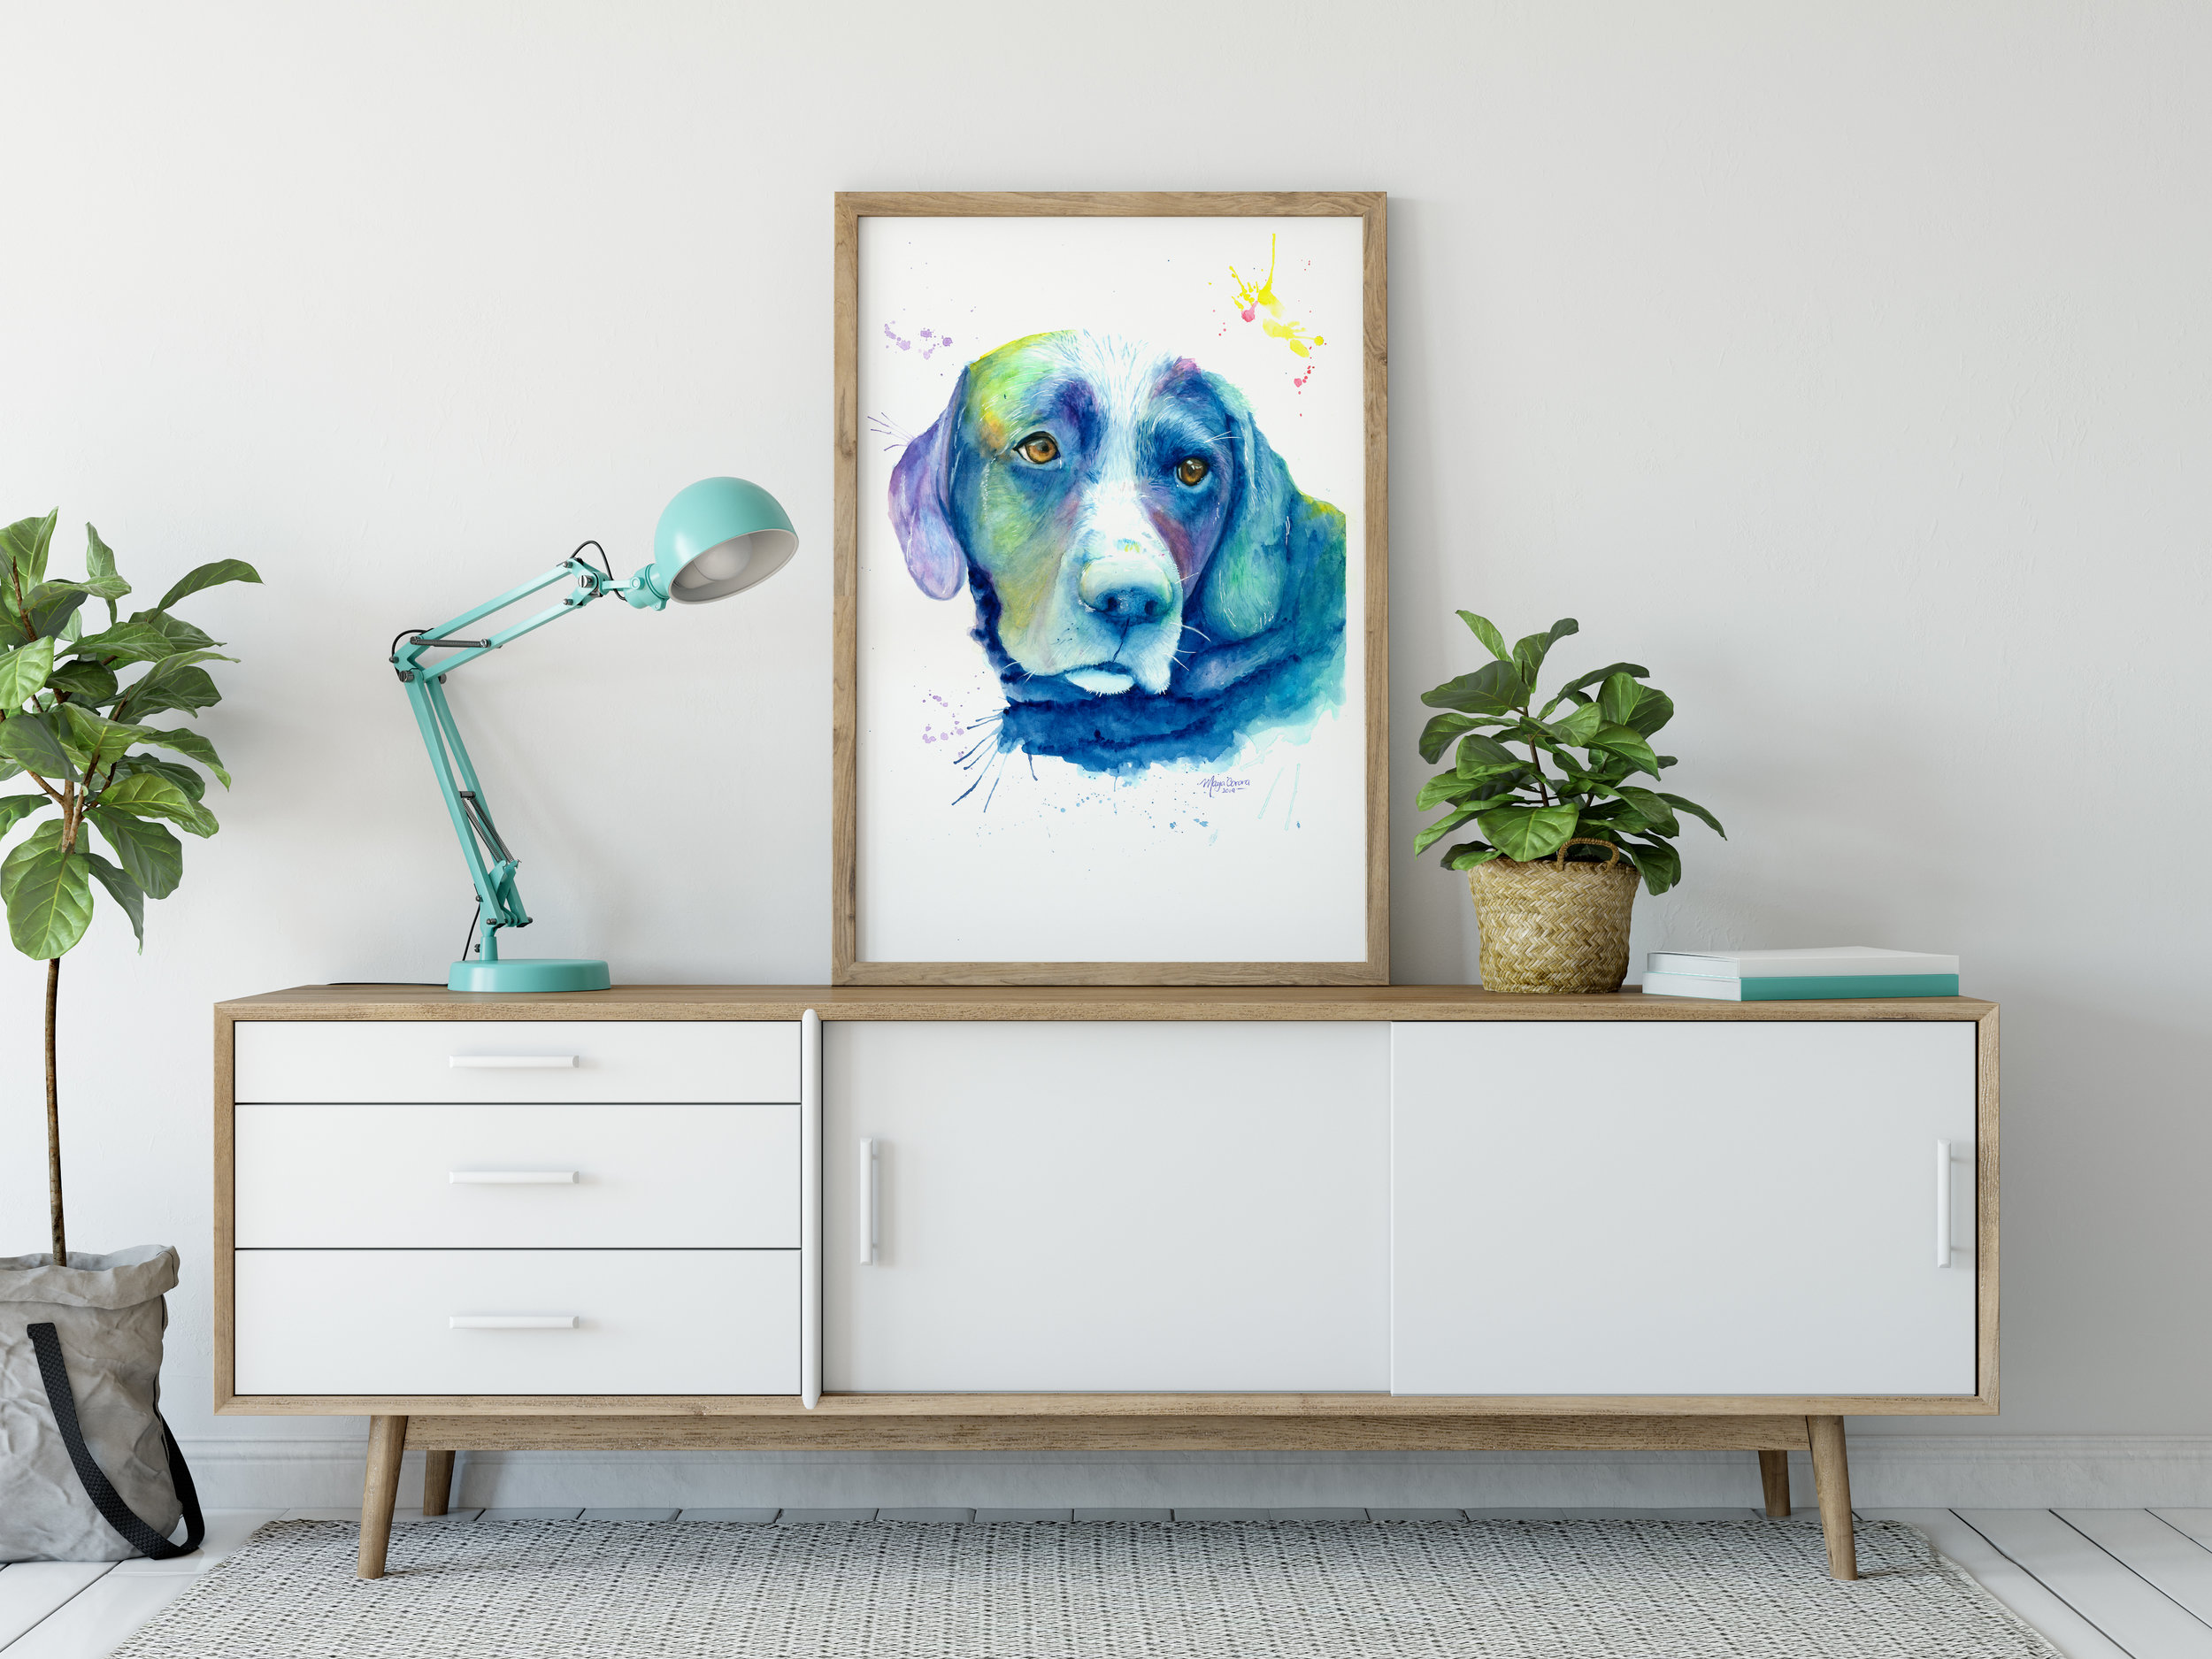 OTIS - ✰✰✰✰✰Our black lab is a member of the family and when I discovered Maya's work I jumped at the chance to have Otis's portrait done for my wife's birthday. We all love it, she captured his essence perfectly with just a hint of whimsy. The painting is a unique and wonderful addition to our home.—Derek Manns, Calgary AB - Canada